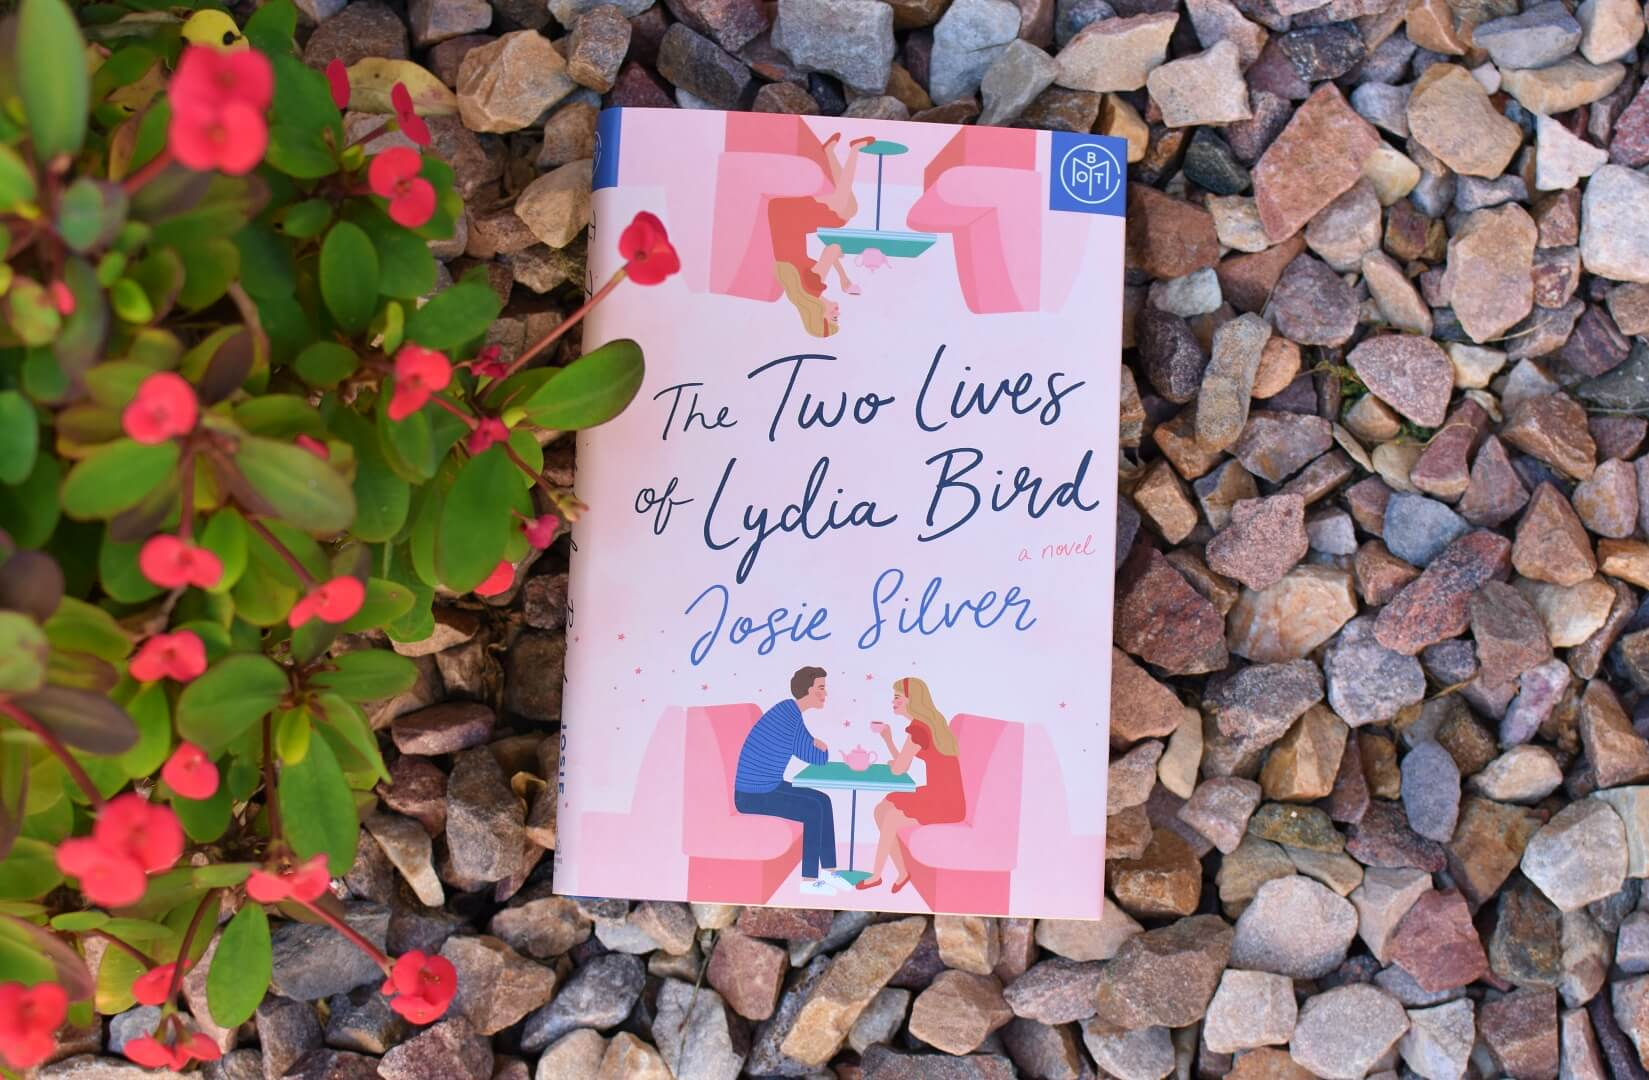 book club questions the two lives of lydia bird - book club chat